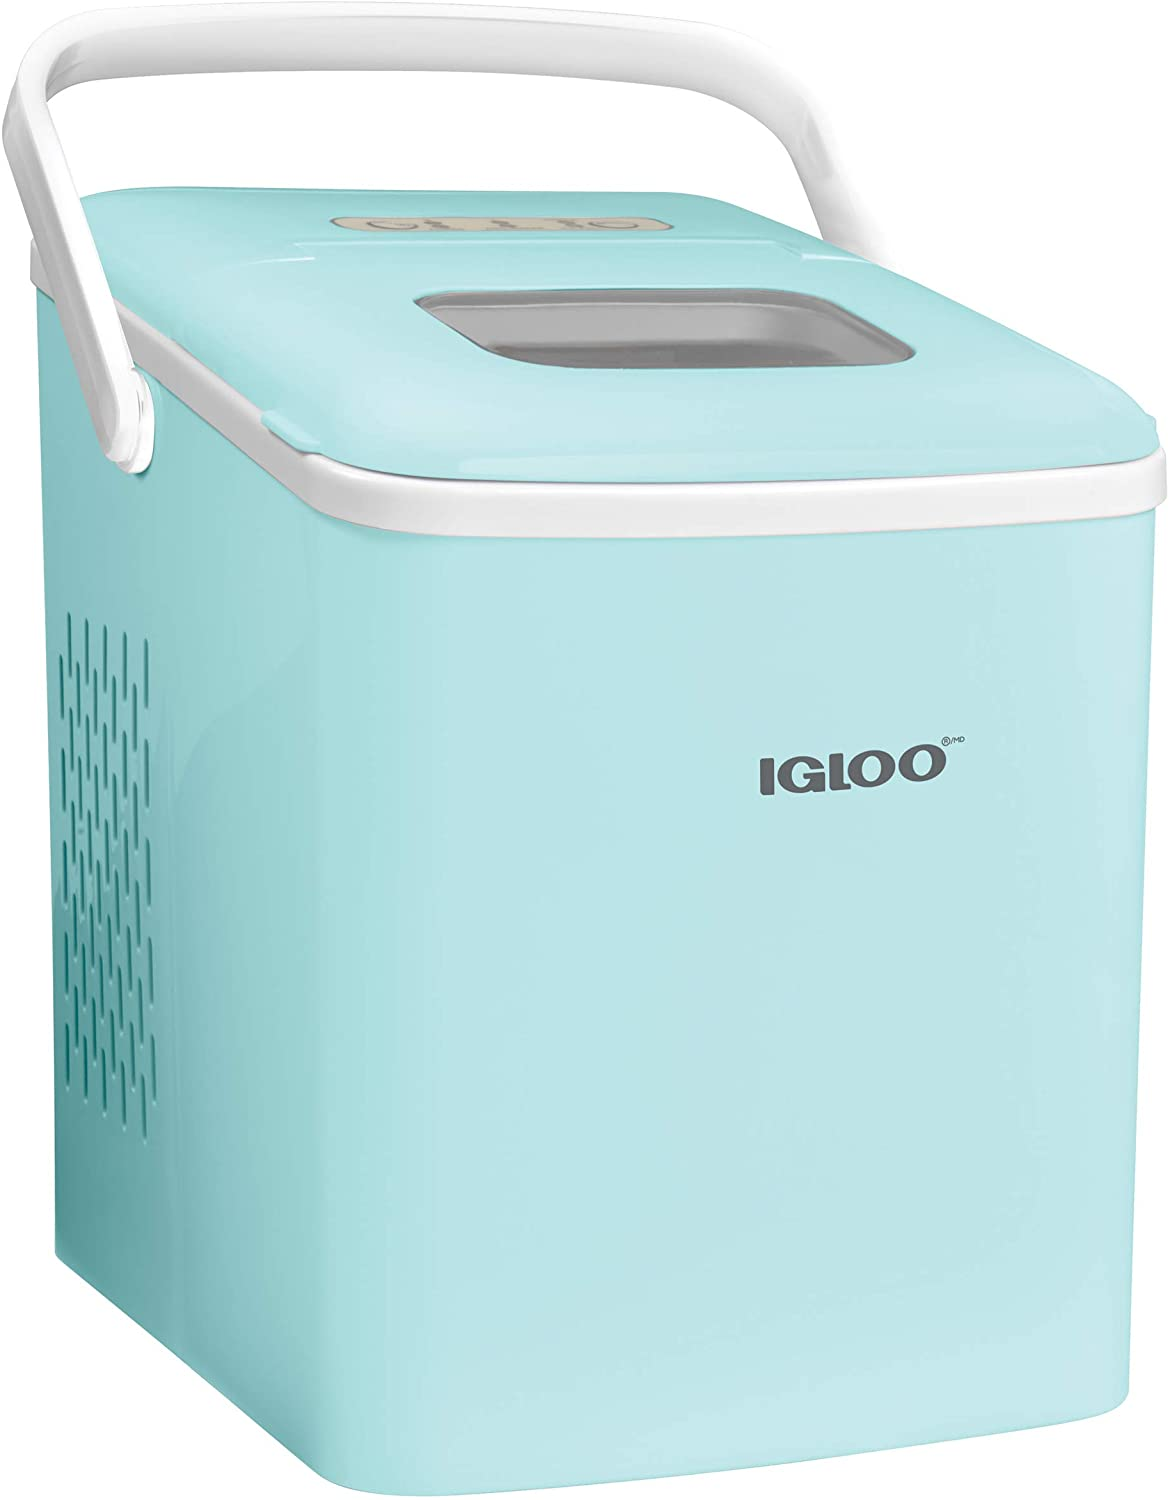 Igloo Automatic With Self-Cleaning Portable Electric Countertop Ice Maker Machine With Handle - ICEB26HNAQ